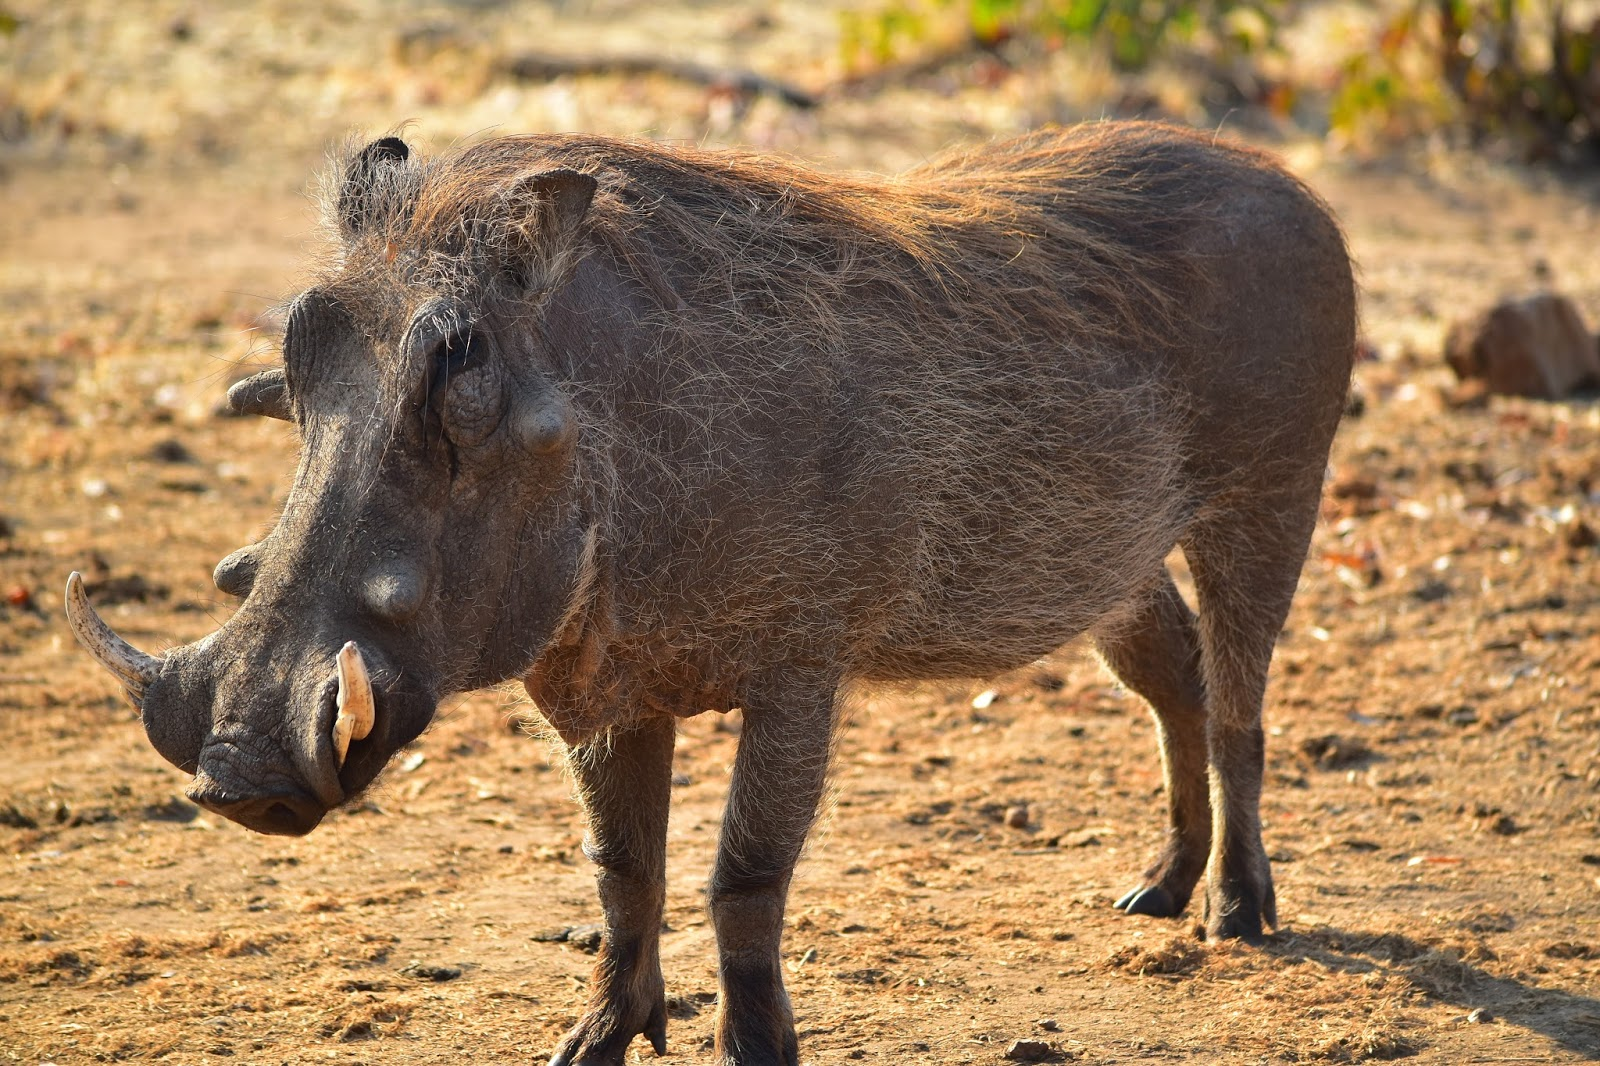 A picture of a warthog.